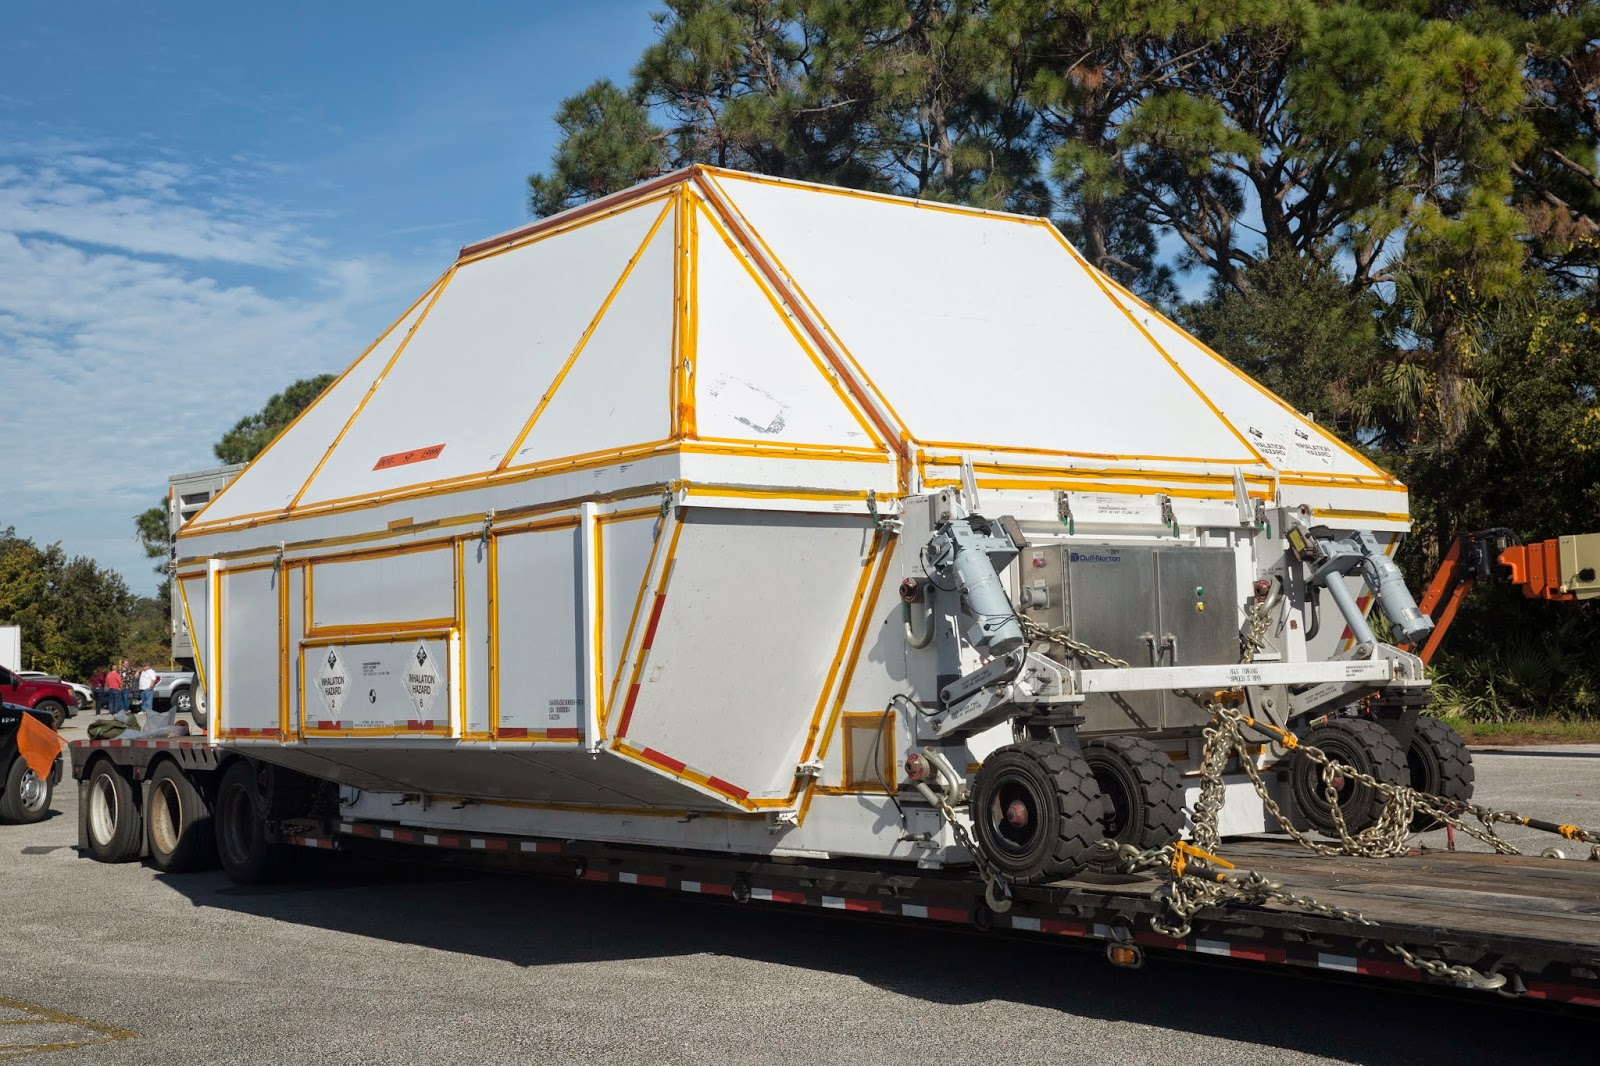 NASA's Orion crew module, enclosed in its crew module transportation fixture and secured on a flatbed truck approaches the Kennedy Space Center. Credit: Lockheed Martin